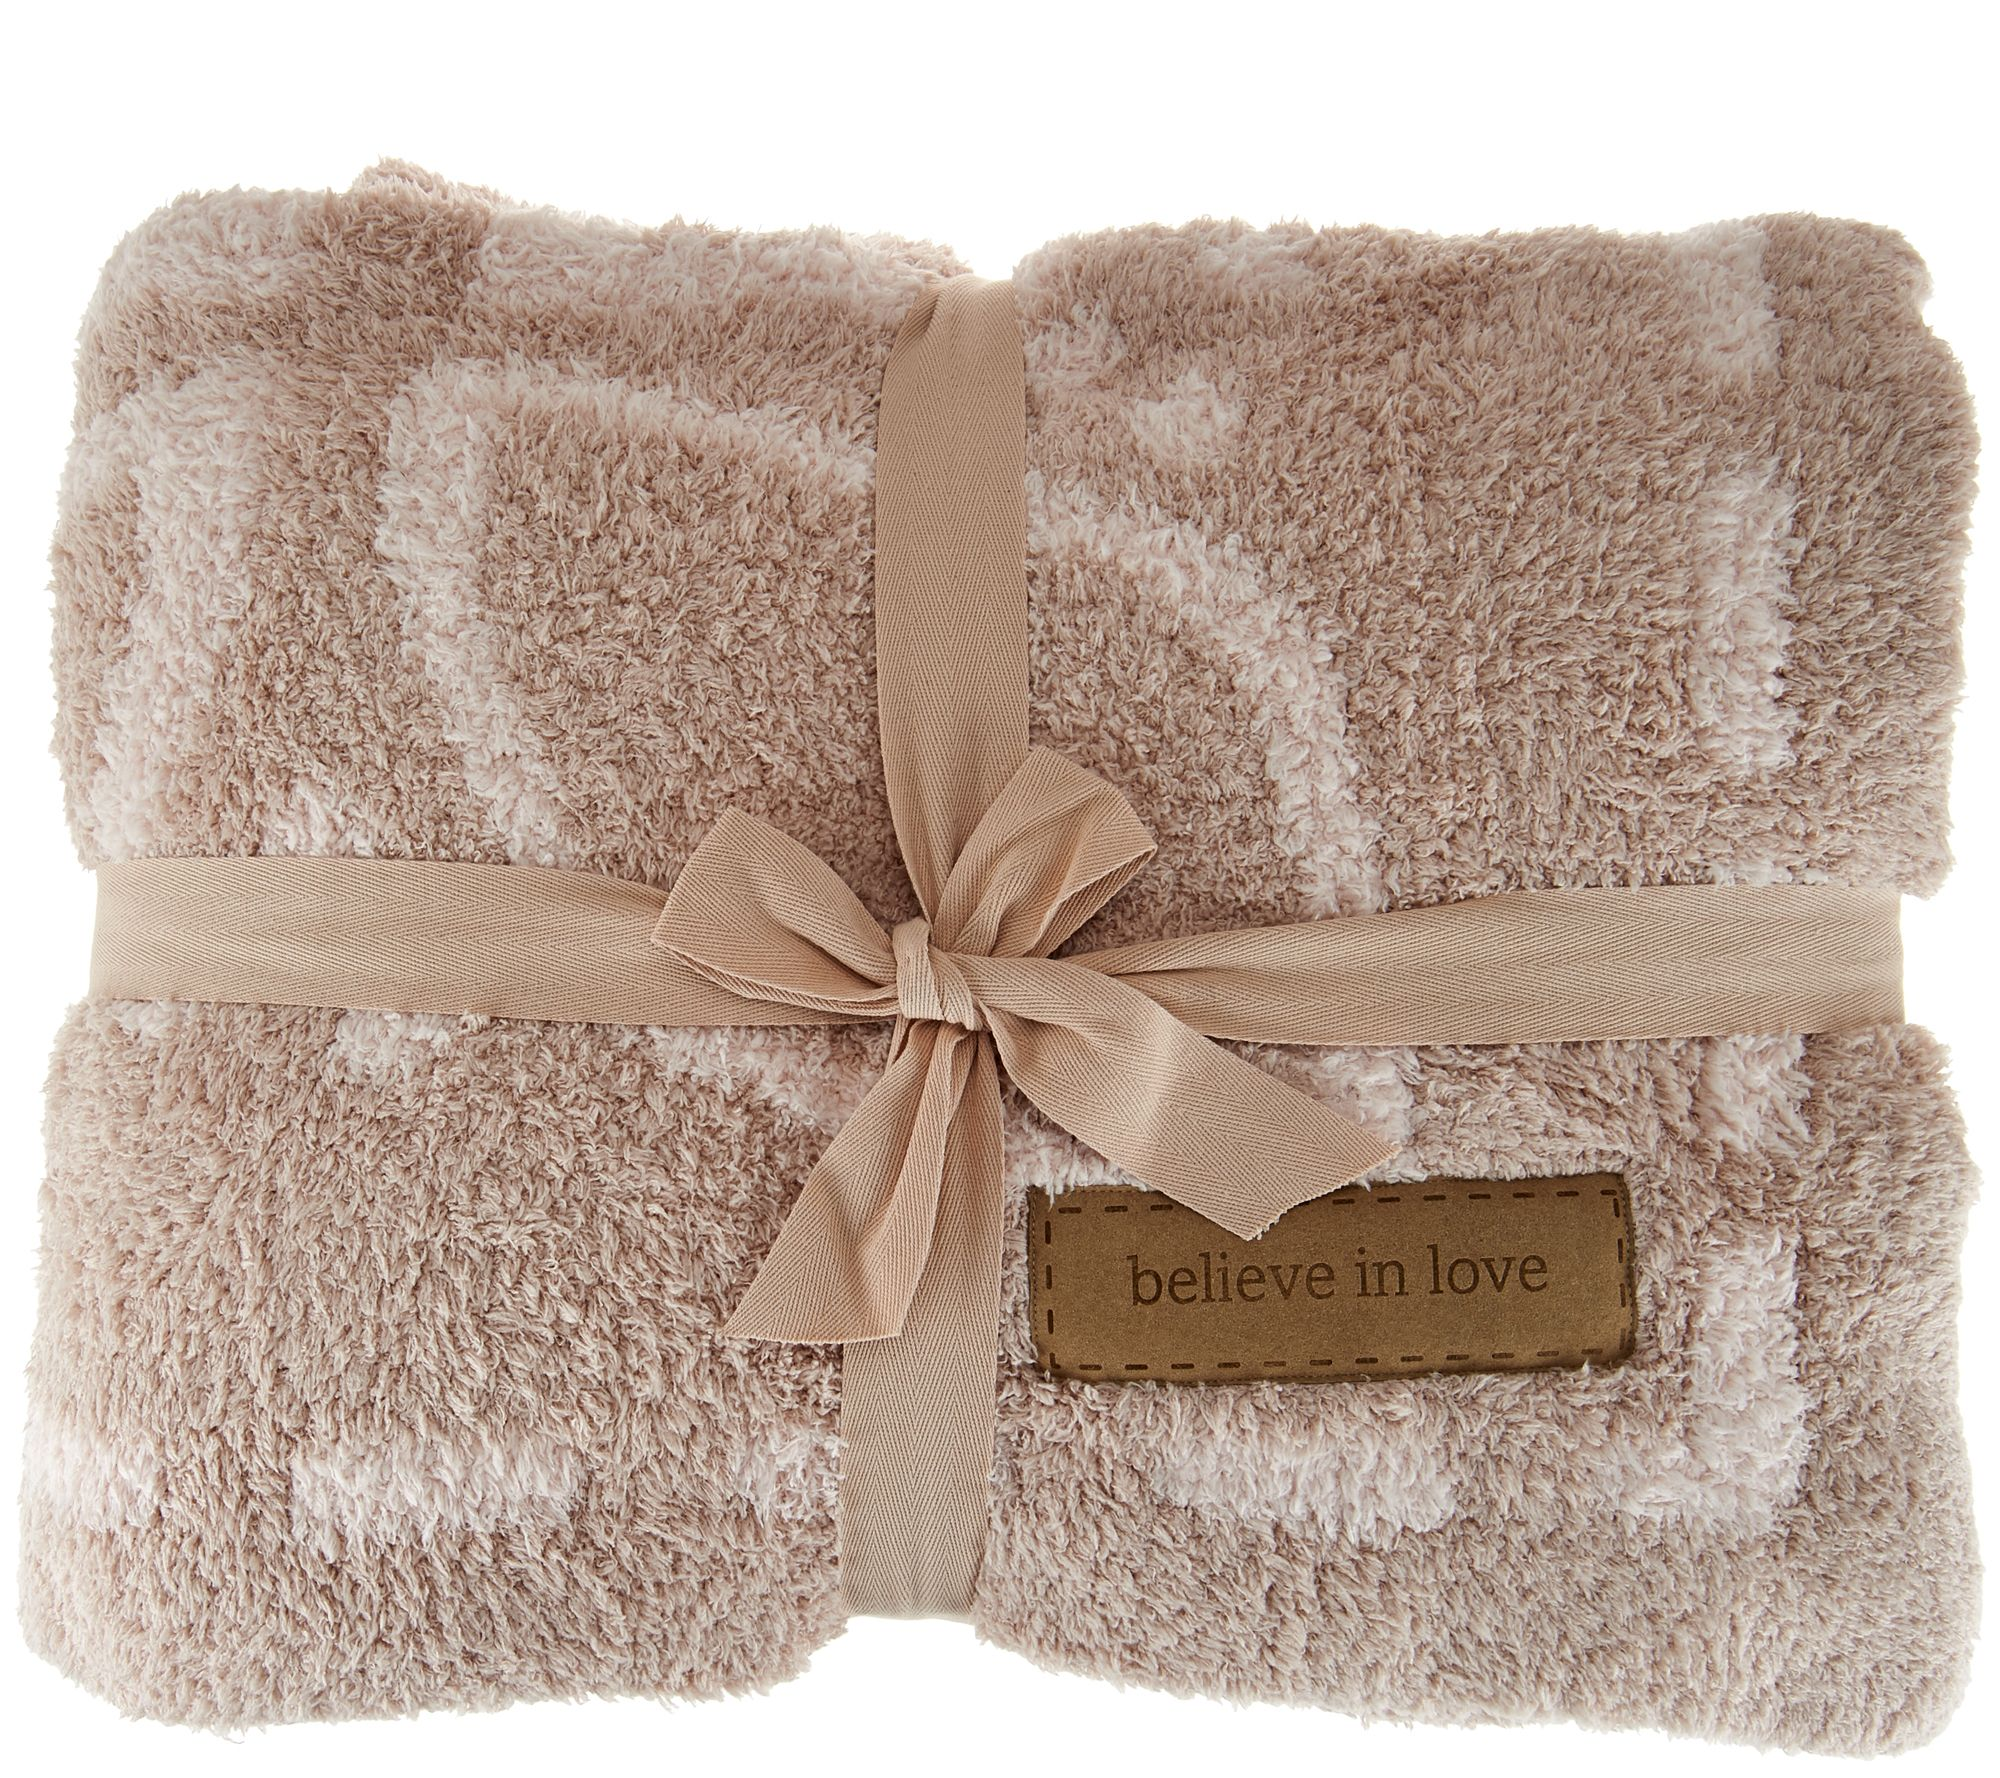 Barefoot Dreams Cozychic Covered In Prayer Throw Blanket Qvc Com